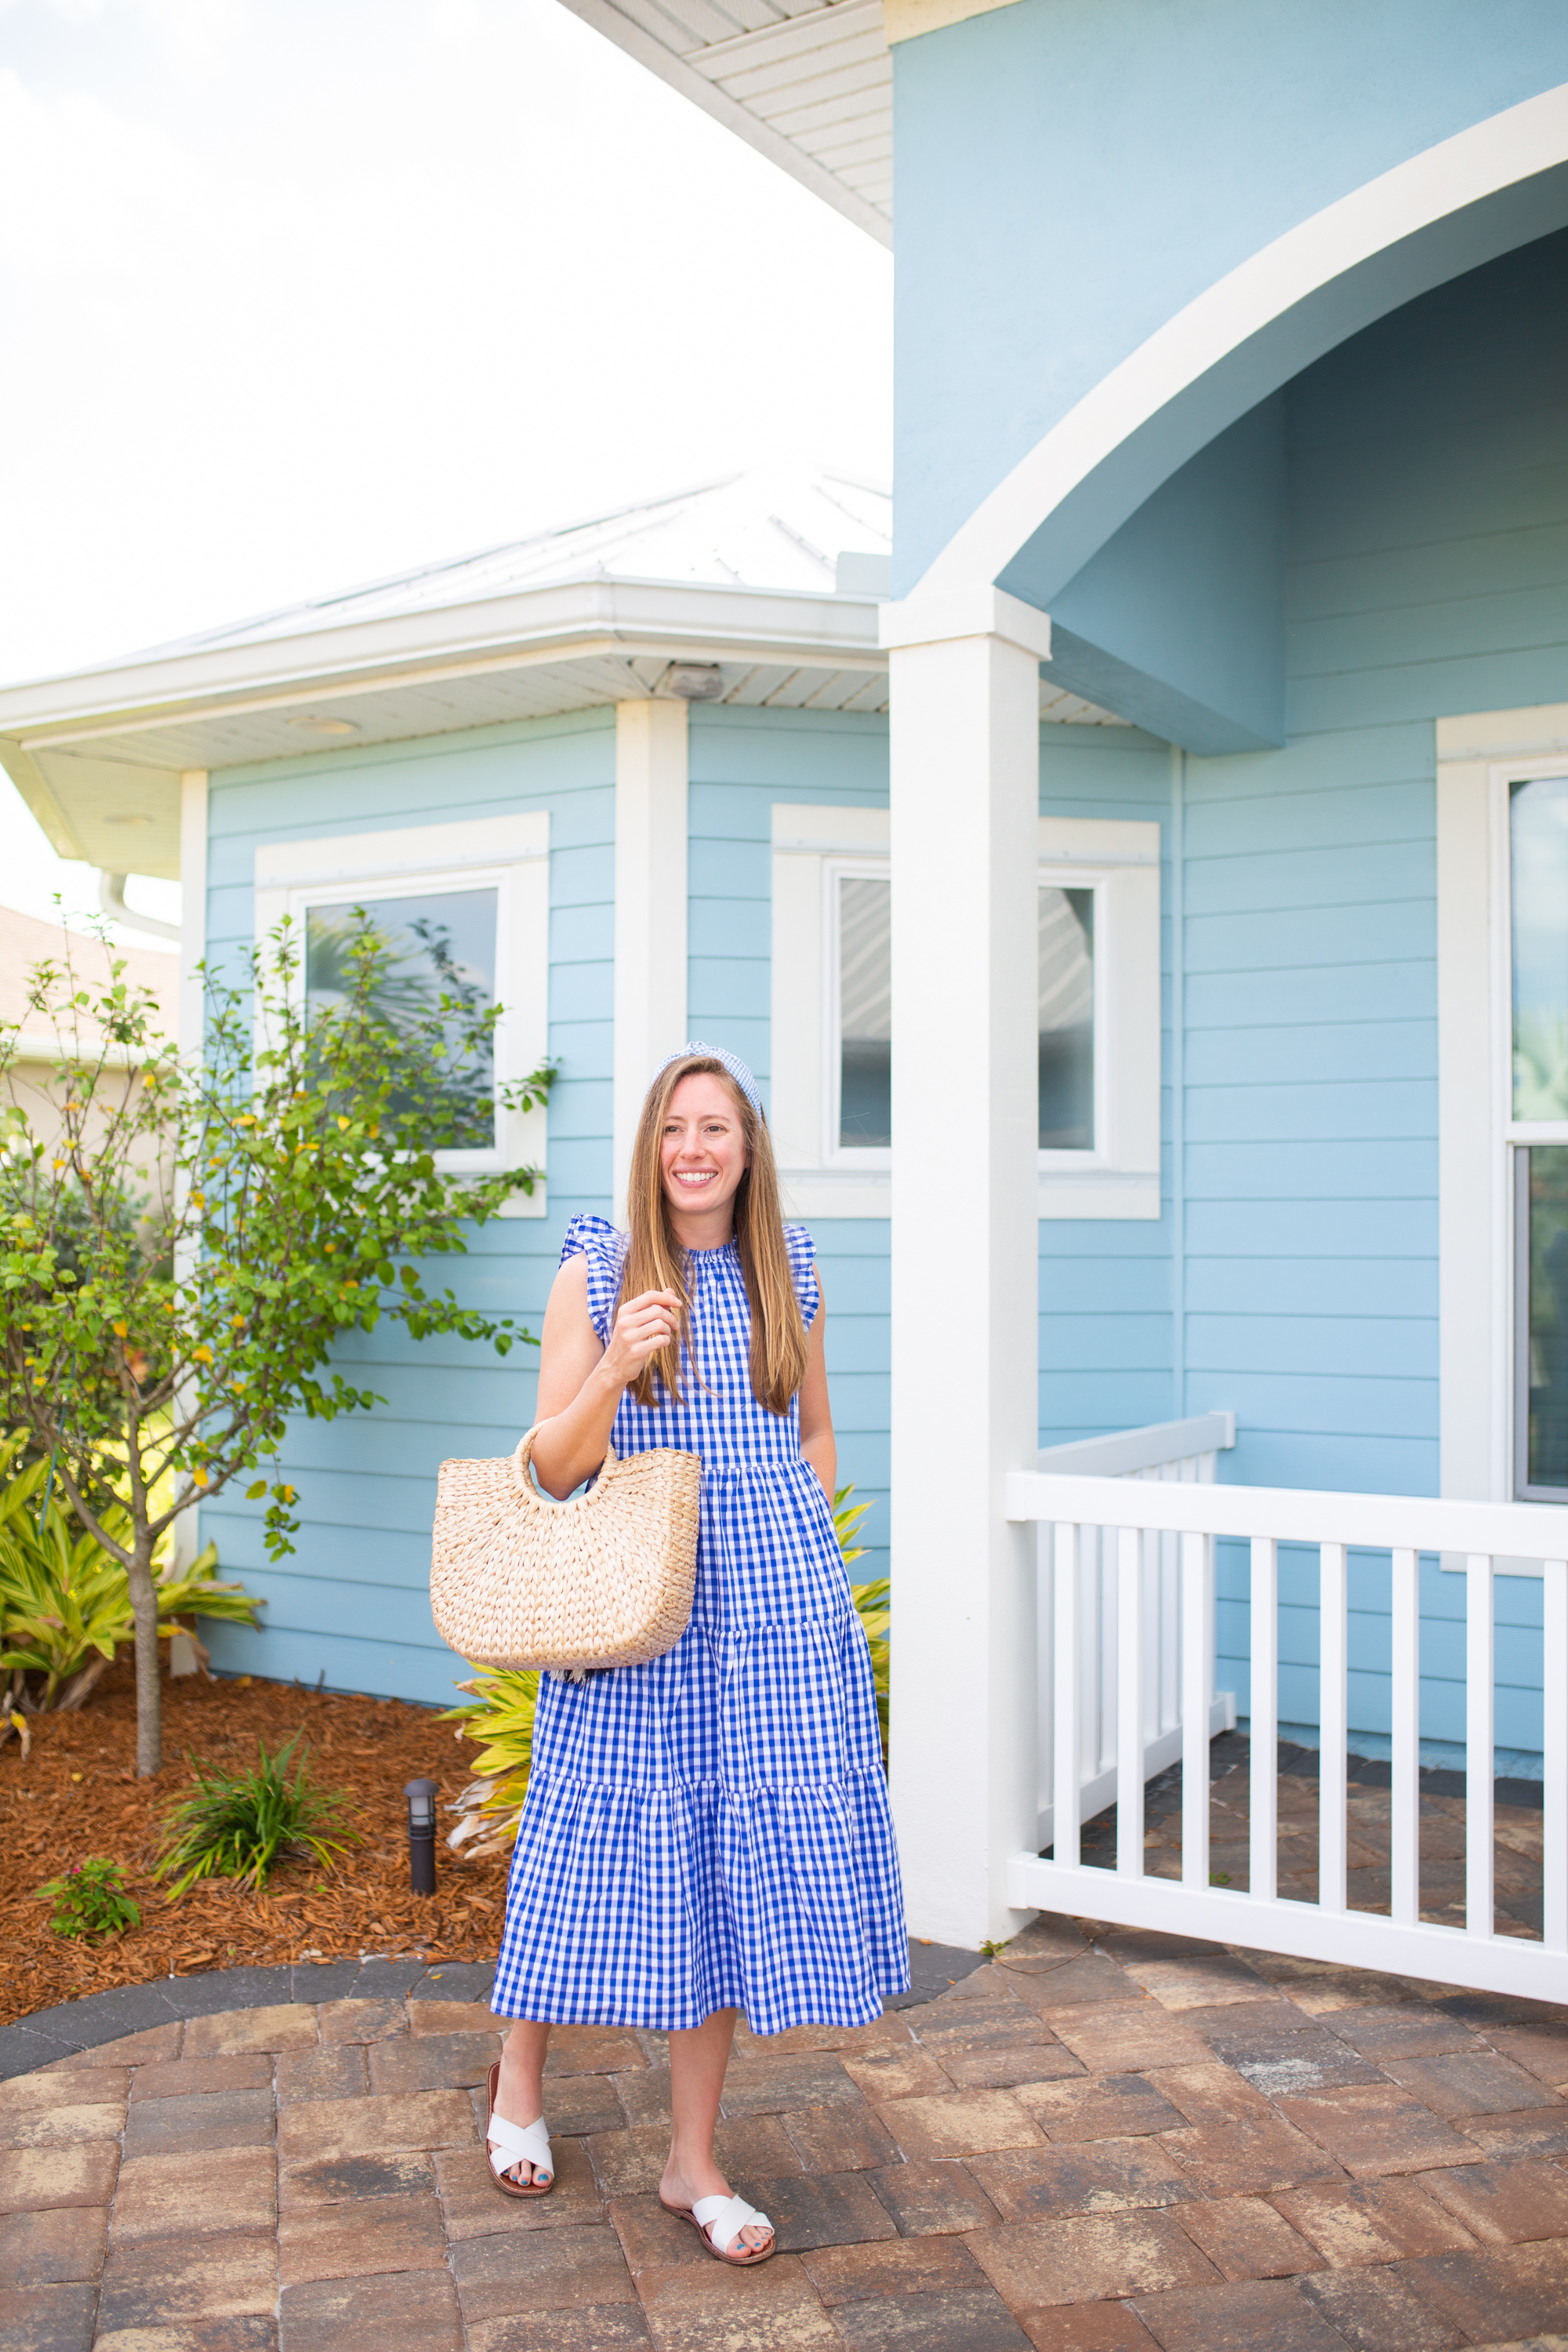 woman wearing J.Crew Gingham Tiered Dress in blue, holding a bag, and standing outside a blue house